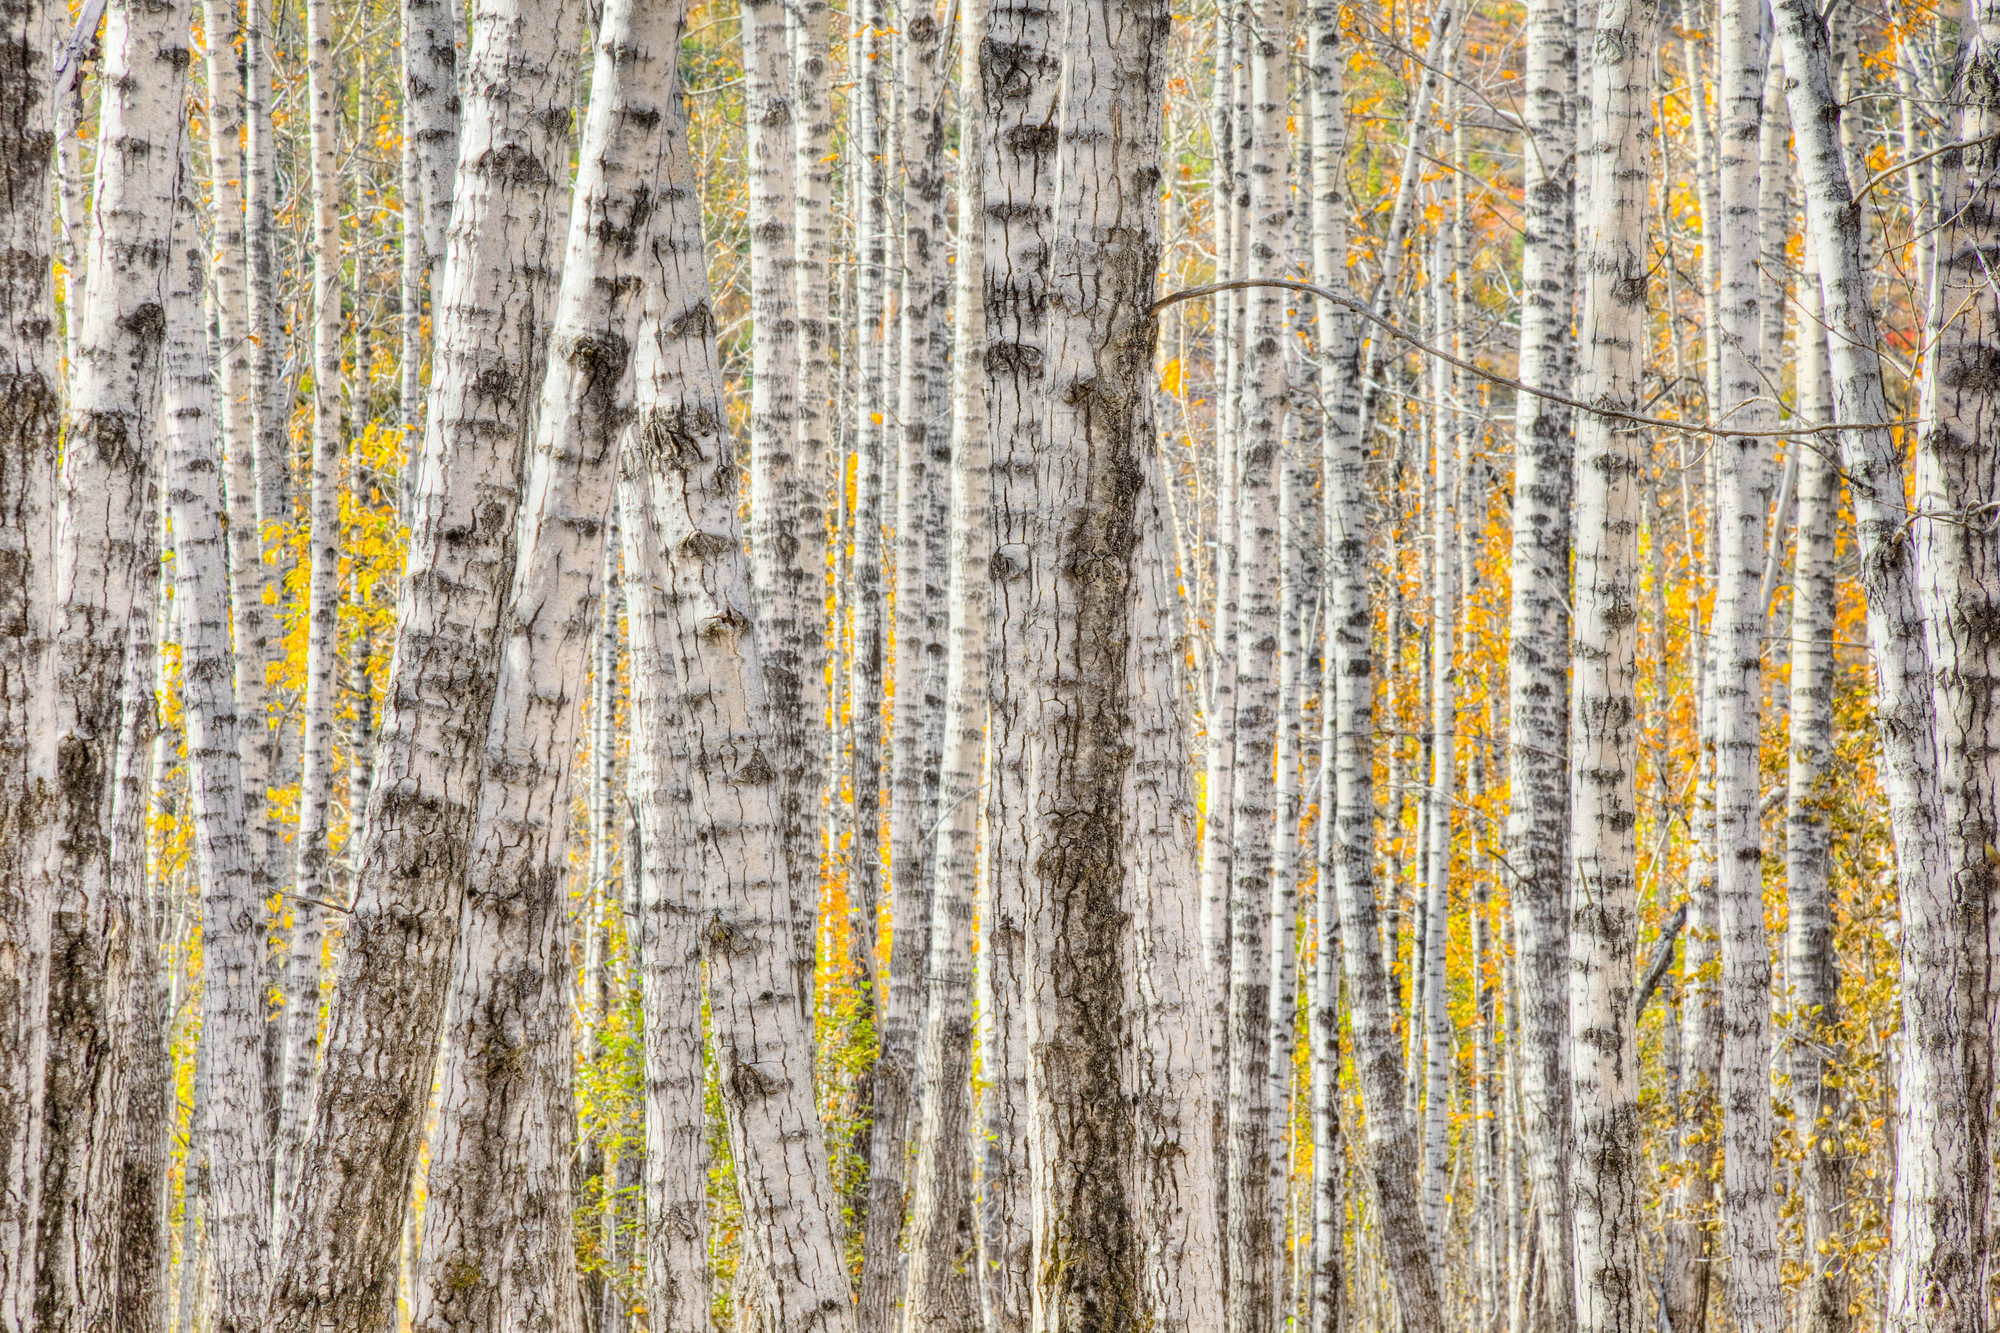 2000x1333 A Poplar Tree Forest In Autumn Wall Mural Photo Wallpaper